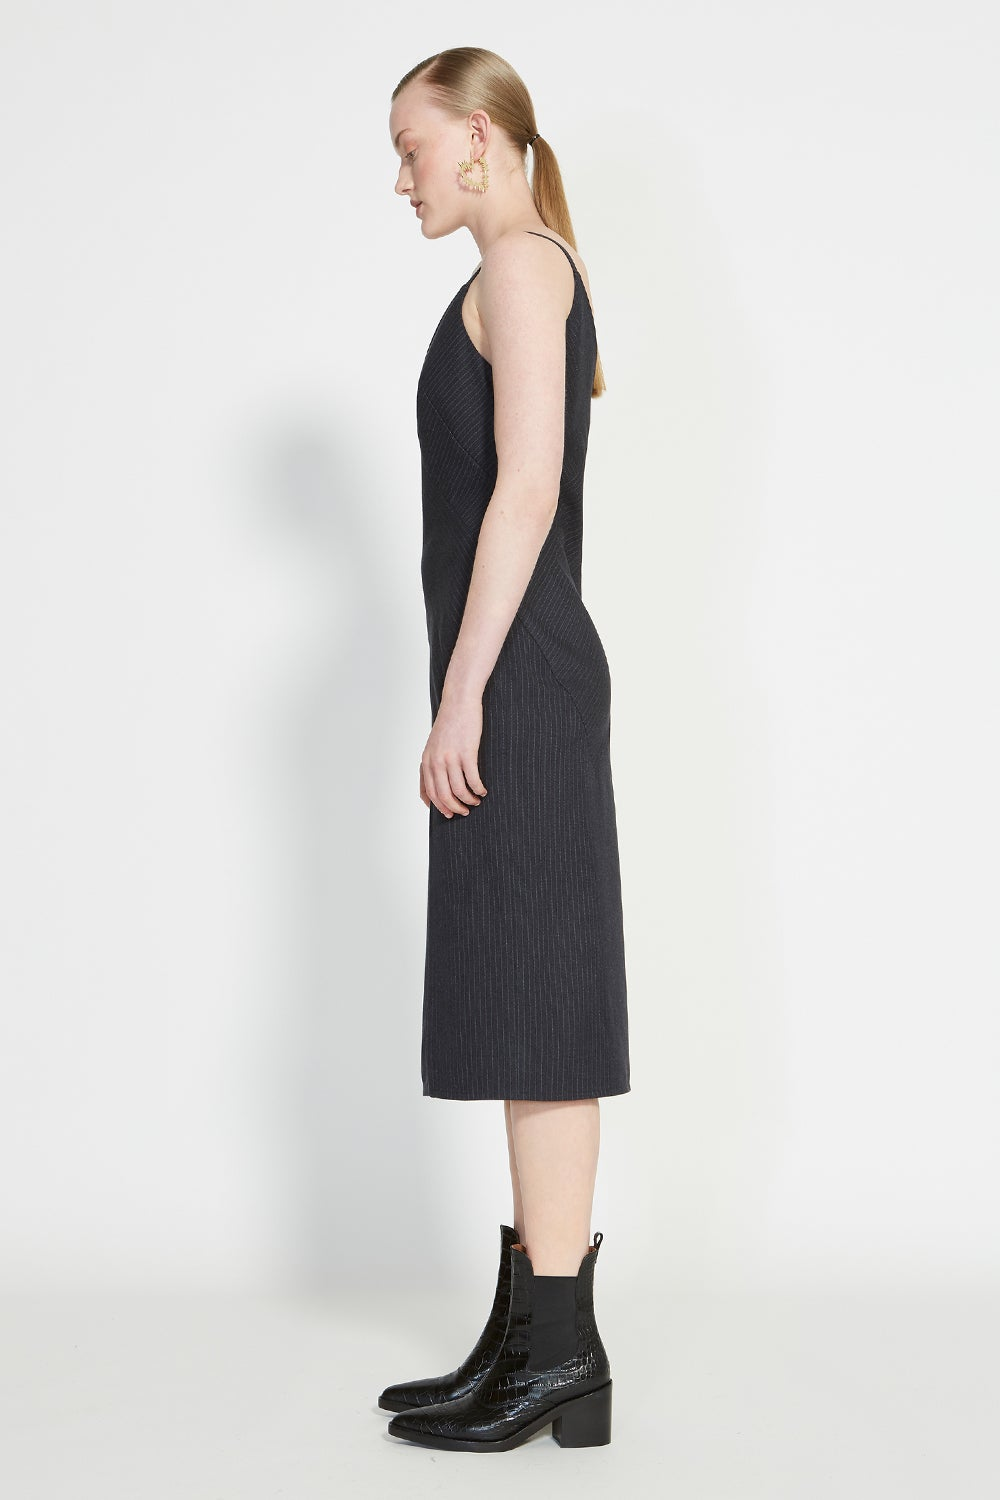 Dark Matter Slip Dress